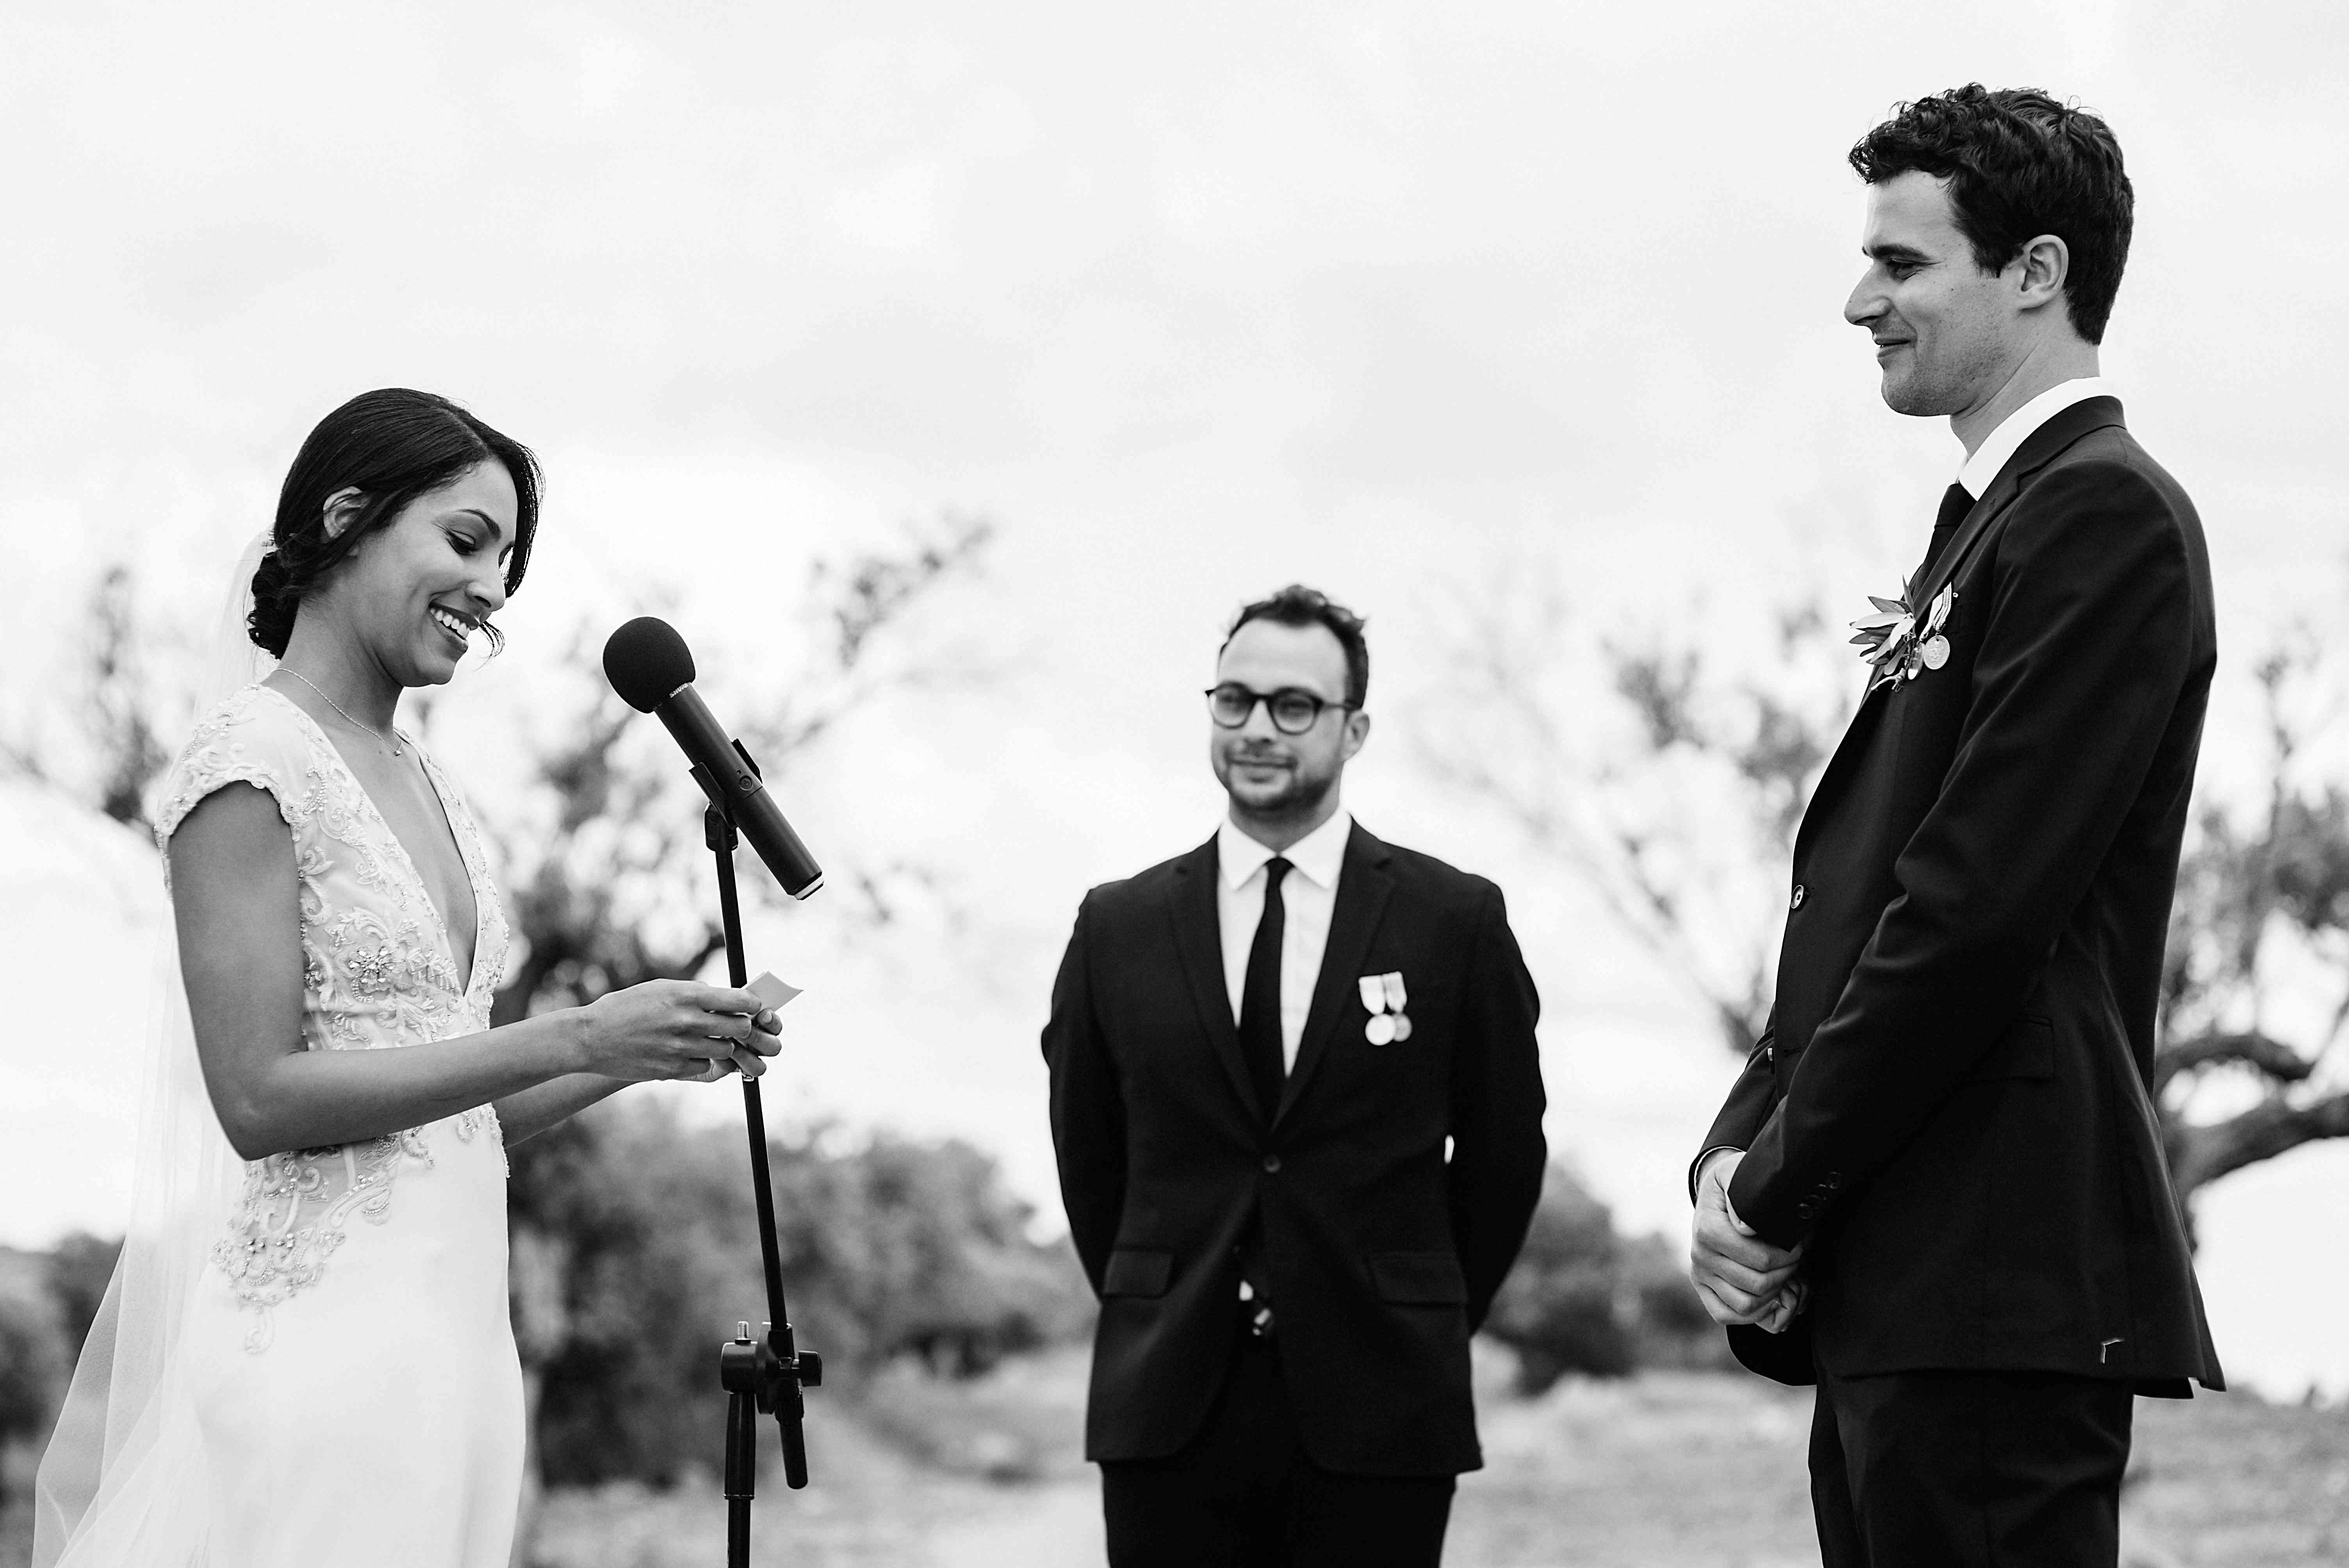 <p>Bride and groom reading vows</p><br><br>